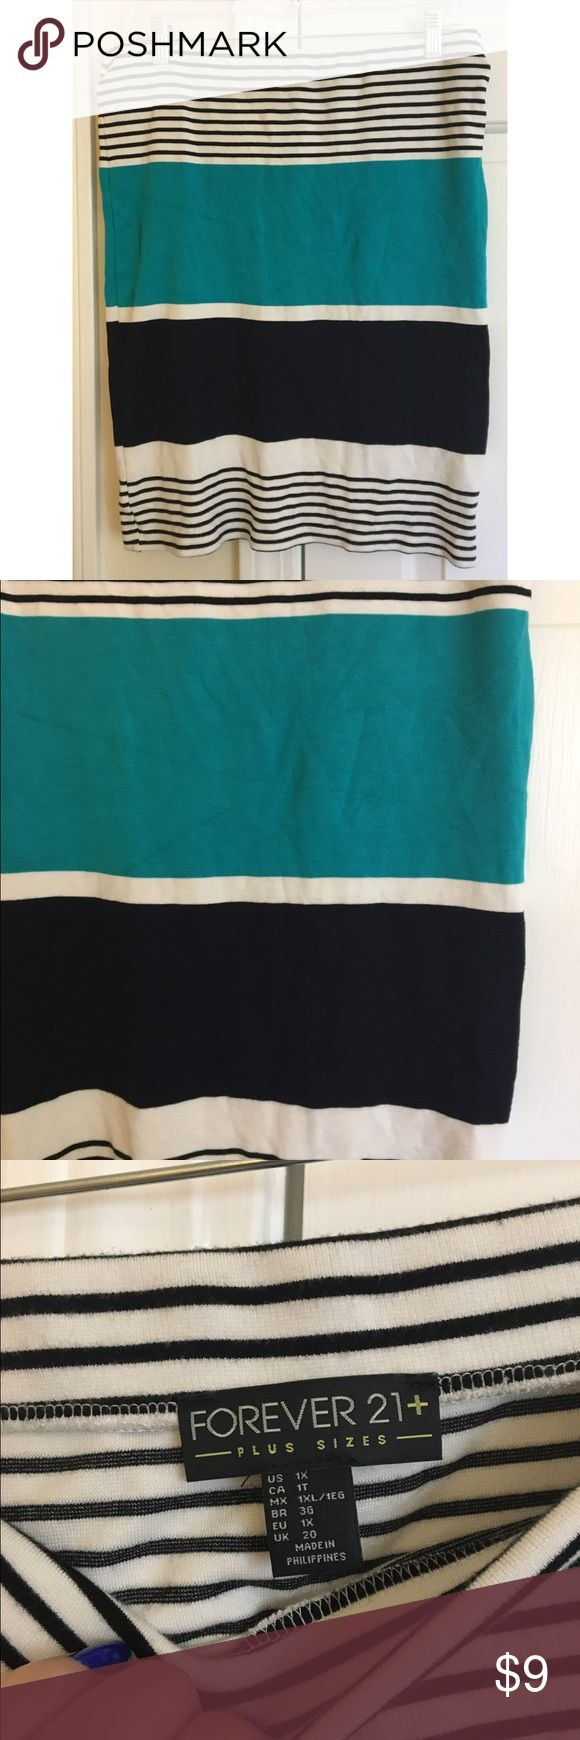 Stretchy fitted skirt from forever21+ This skirt is great for going to work, going out, and everything in between! The teal, black and white colors and stripes make it fun while the simple and formfitting shape keeps it classic. Forever 21 Skirts Mini